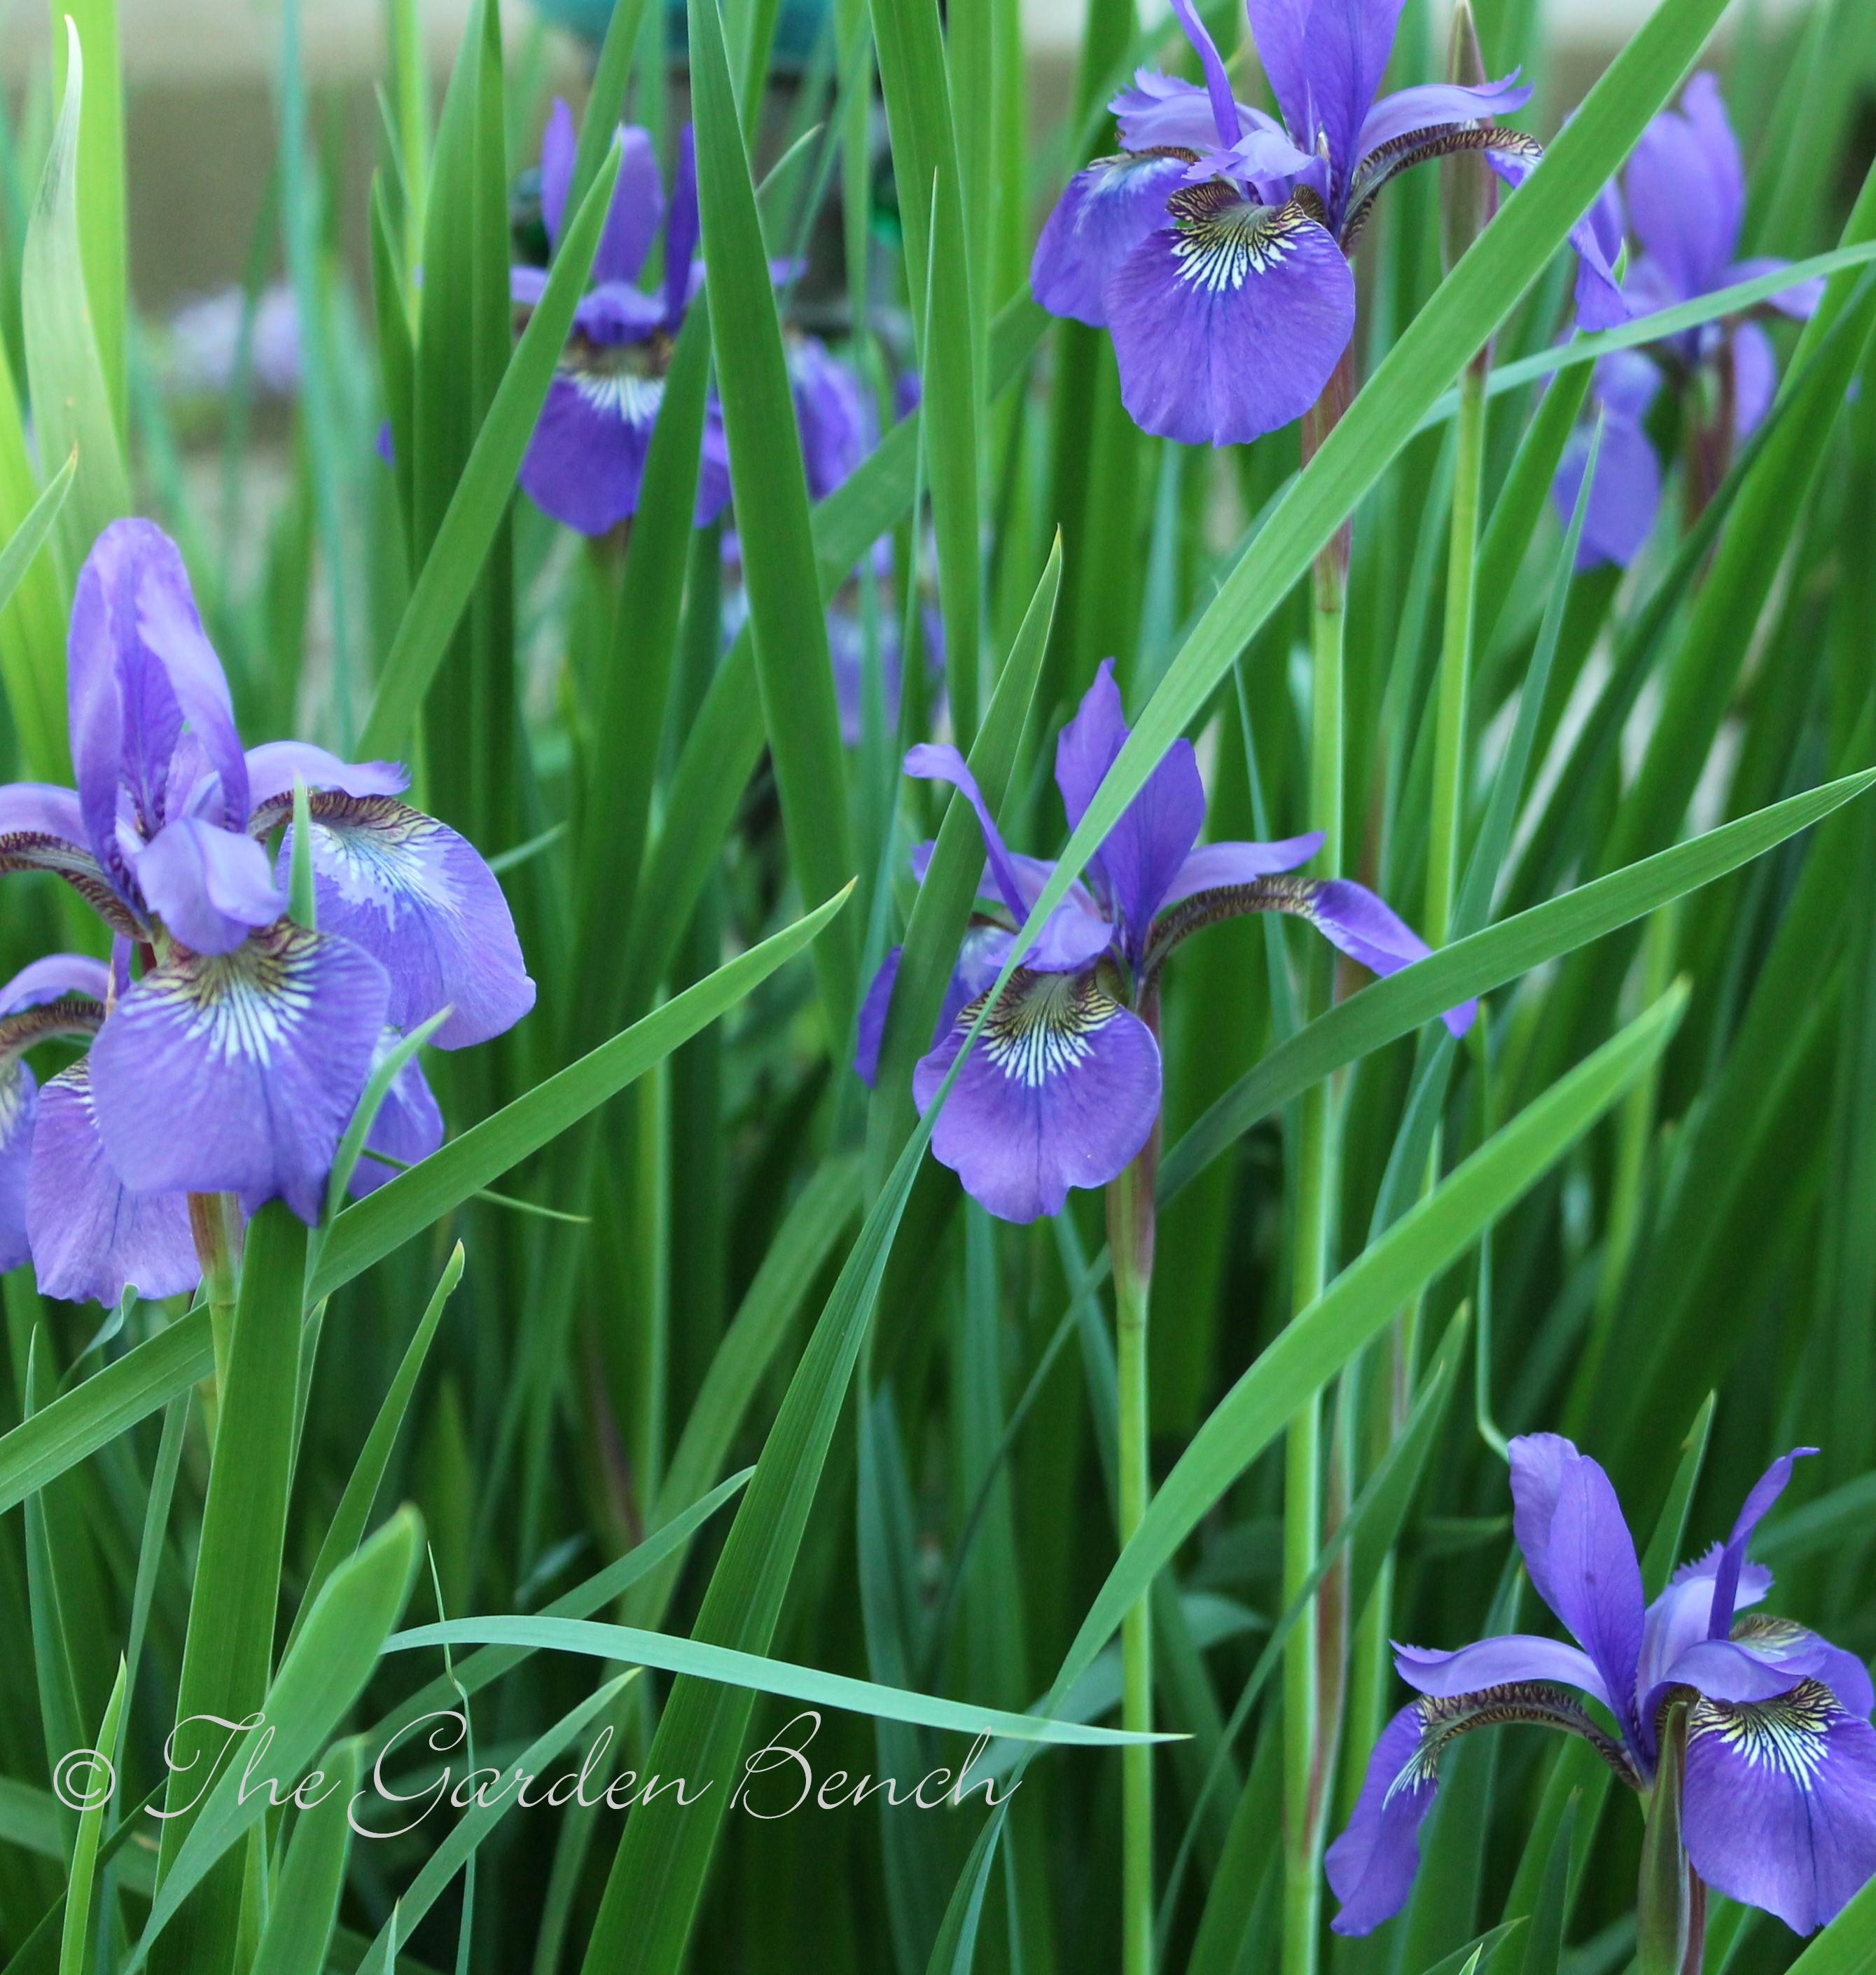 When will siberian irises bloom the garden bench irises are among the seasons loveliest flowers the big beautiful bearded irises that are putting on such a show right now seem to be unconcerned about izmirmasajfo